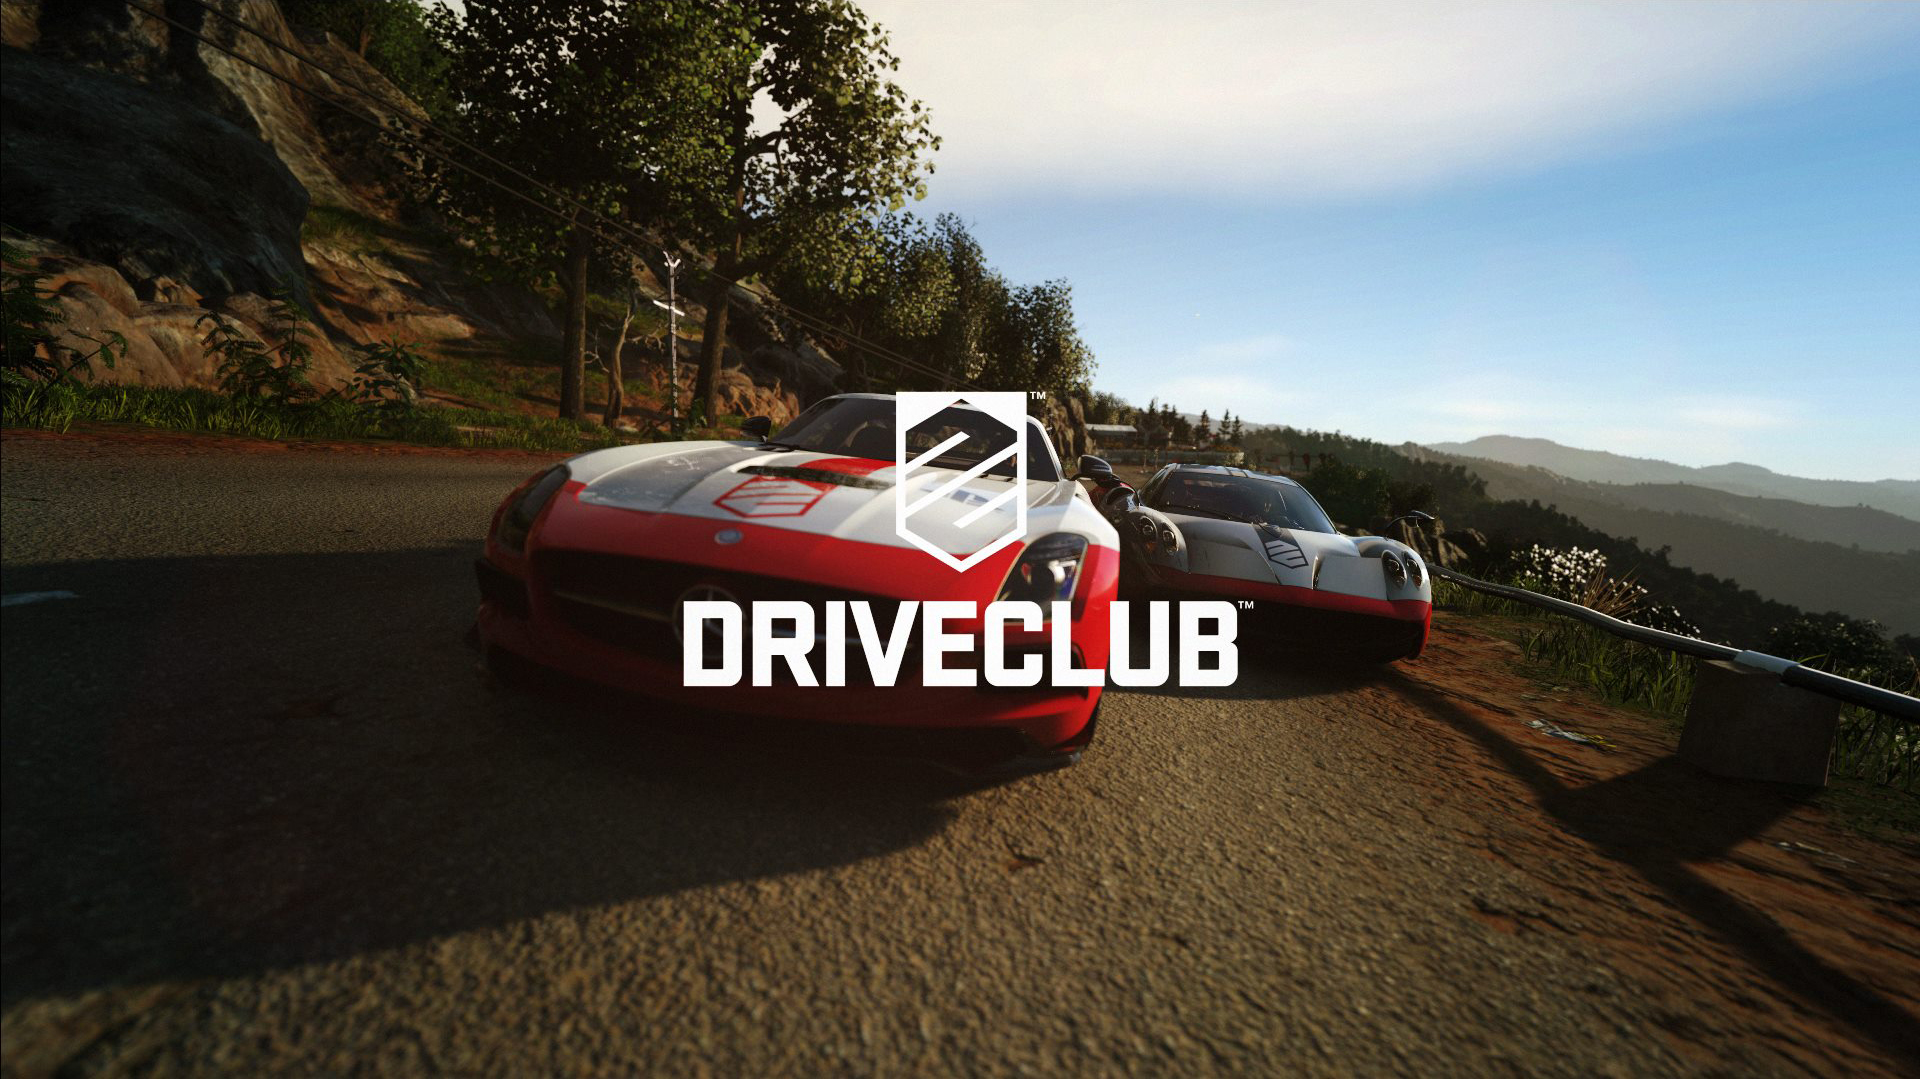 driveclub owners deserve a refund and an apology   gotgame